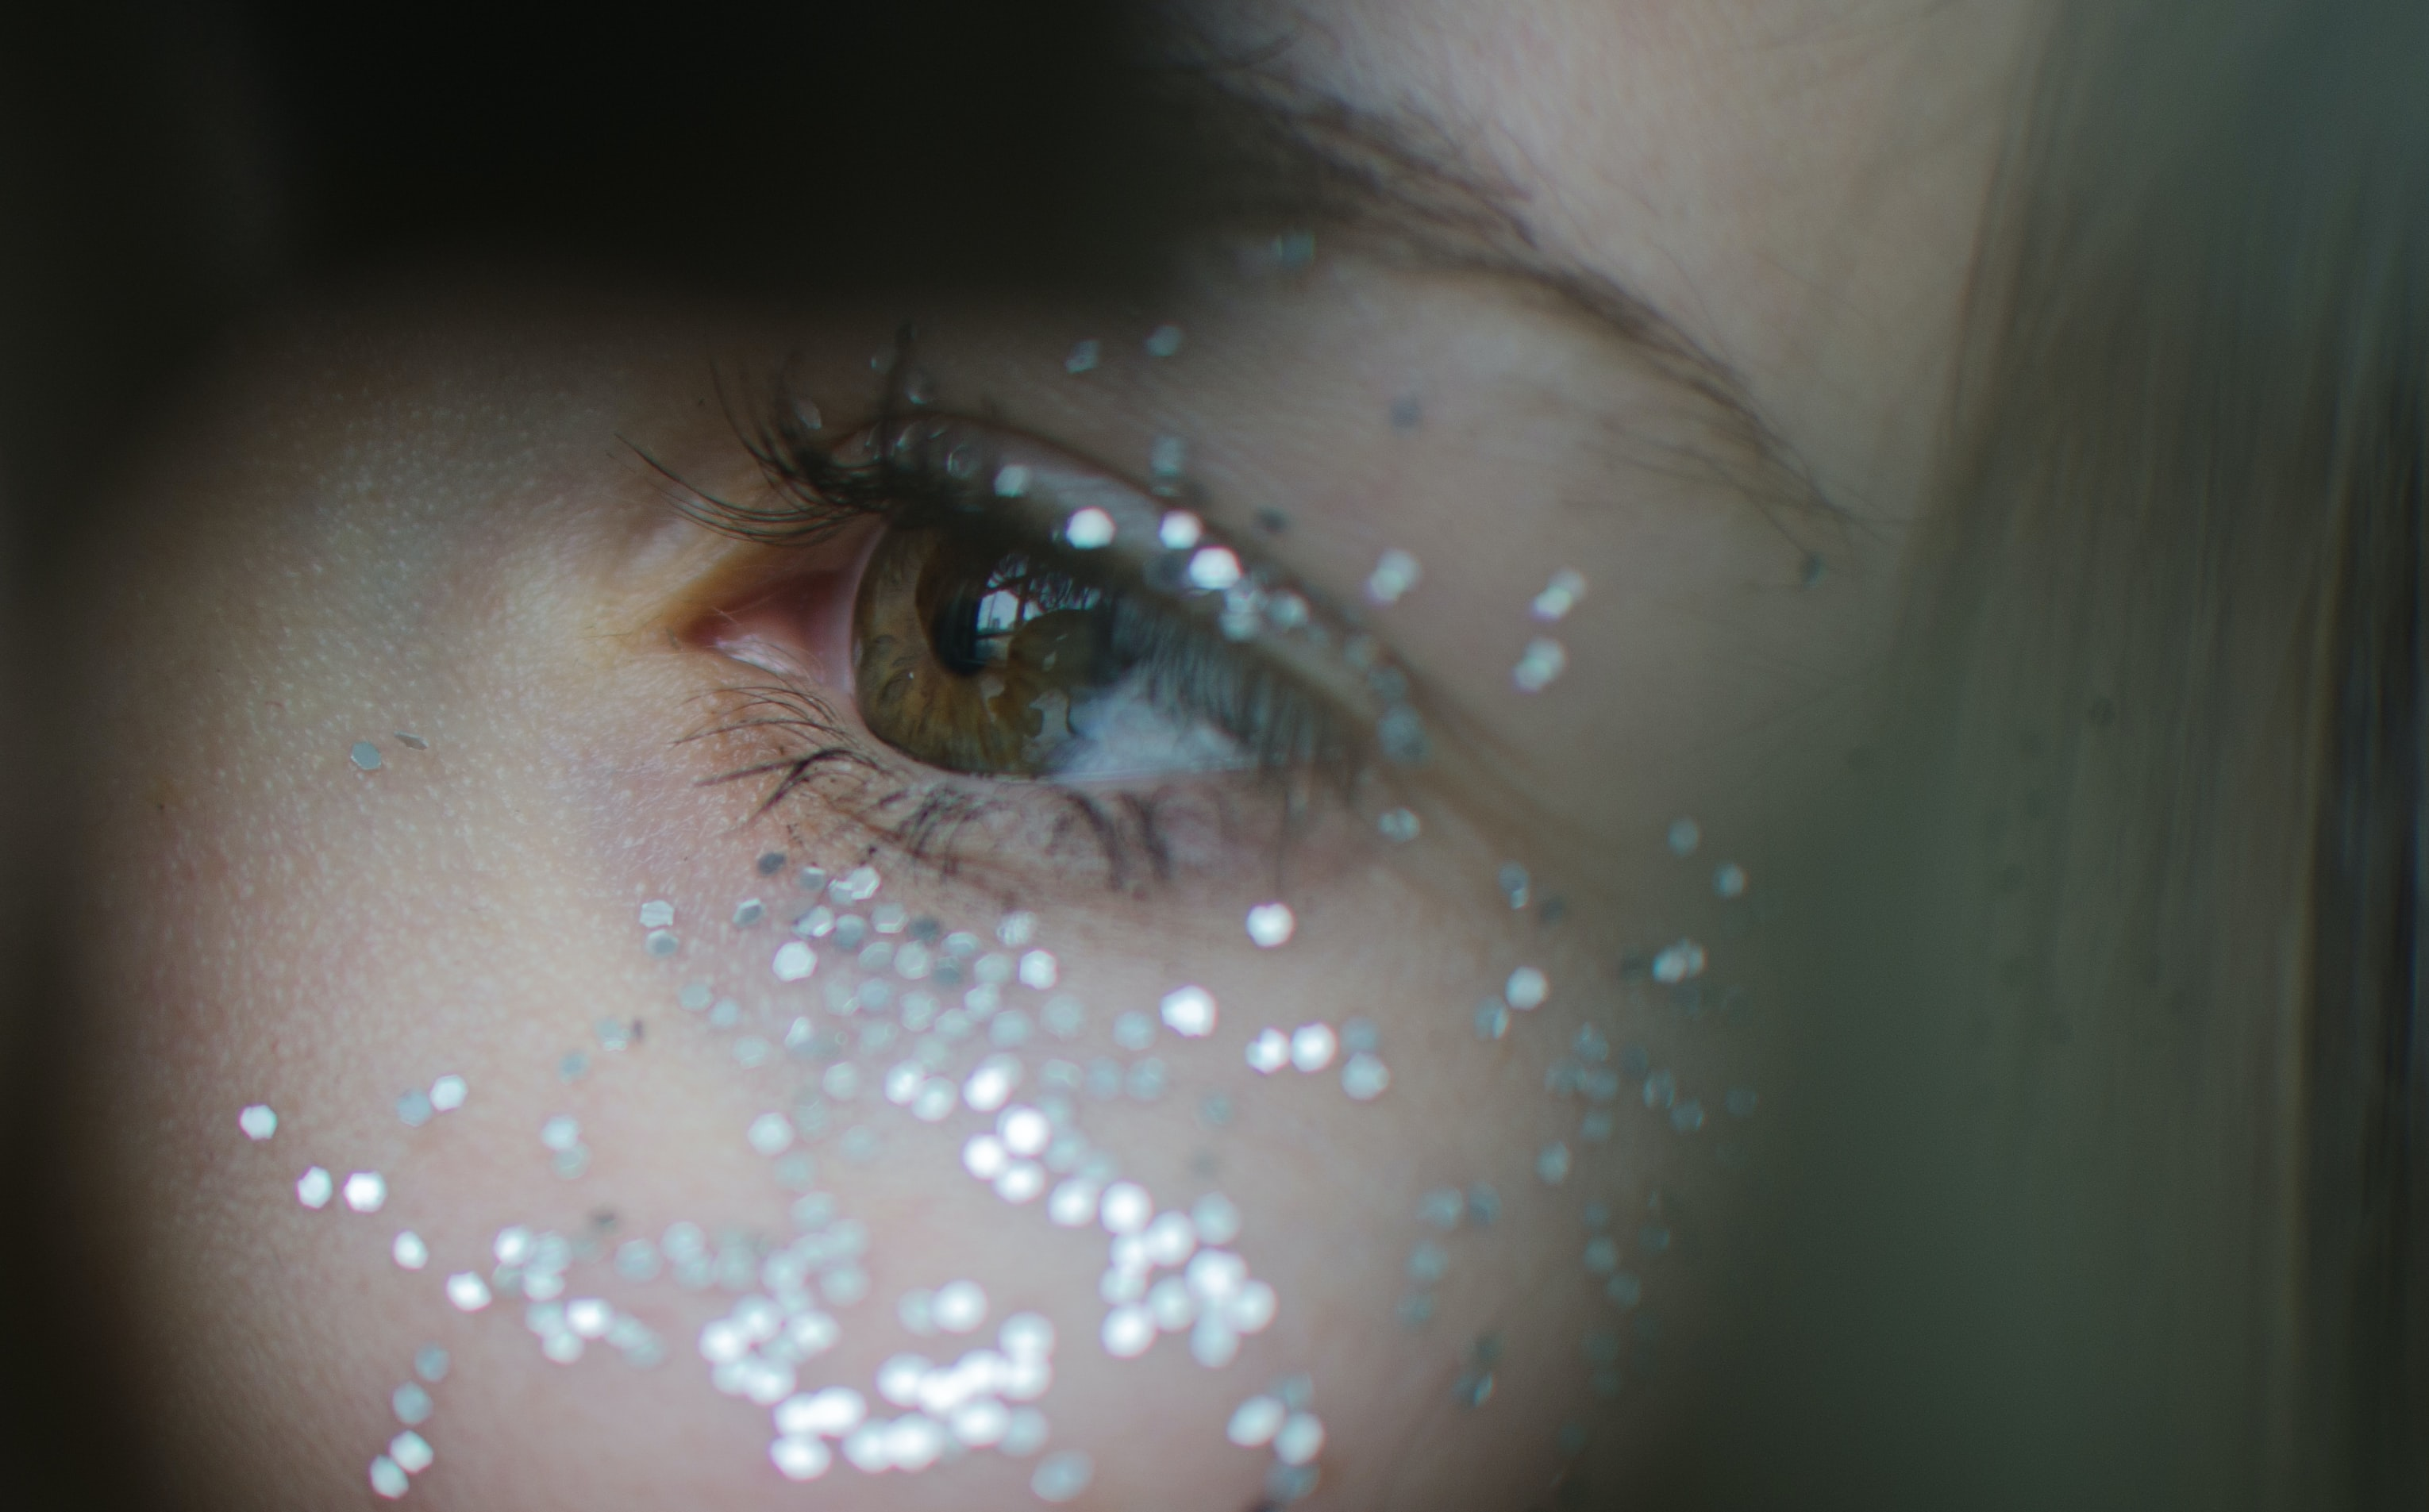 Close-up of glitter around a woman's eye